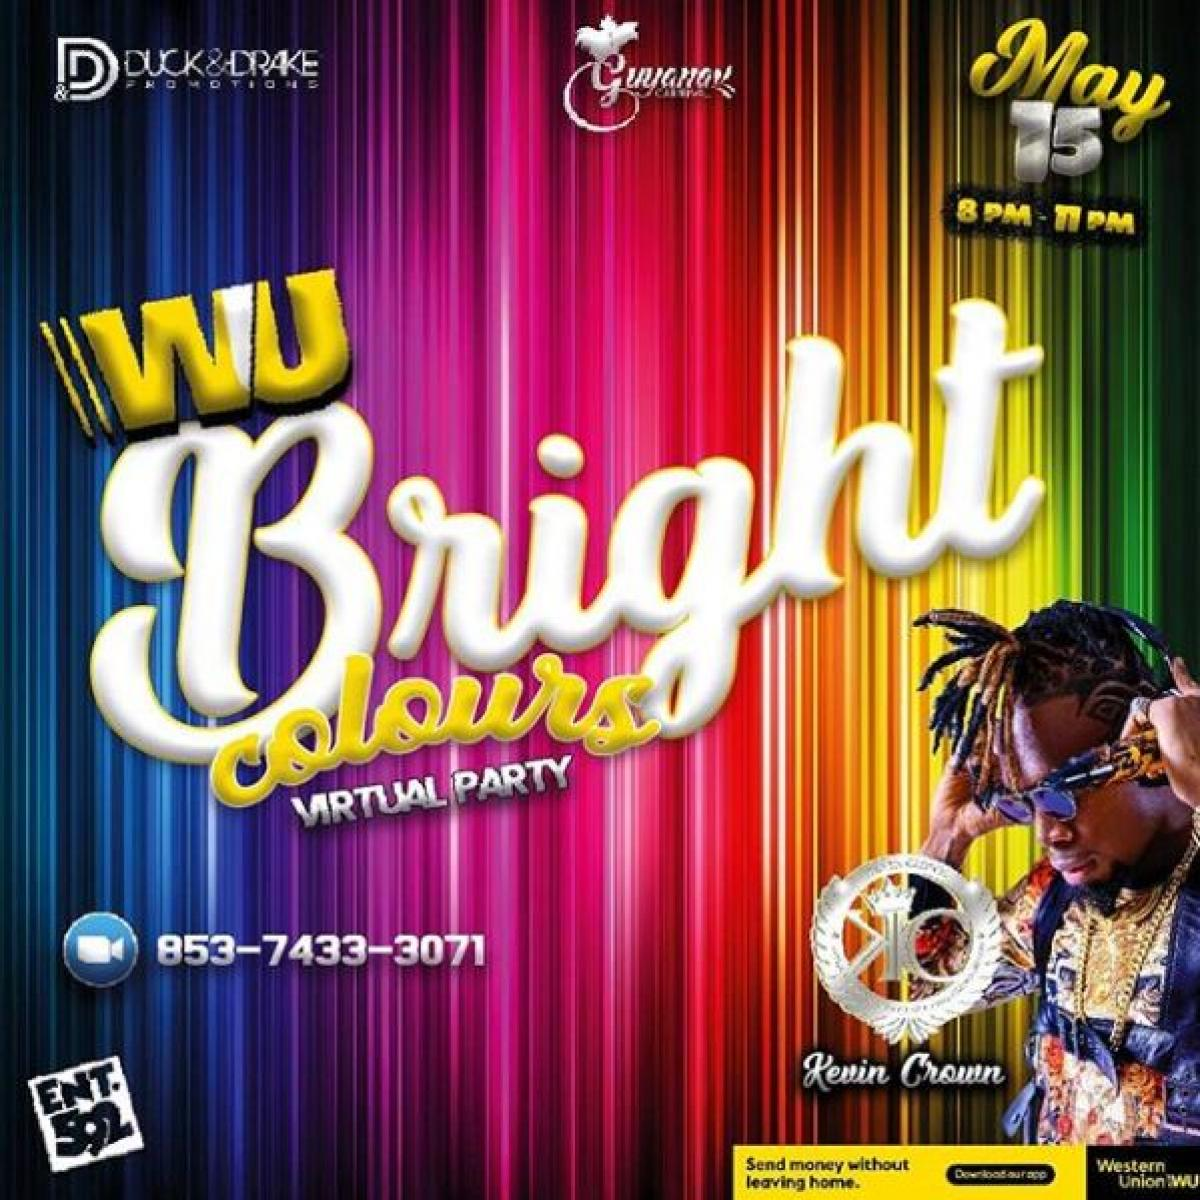 Bright Colours flyer or graphic.